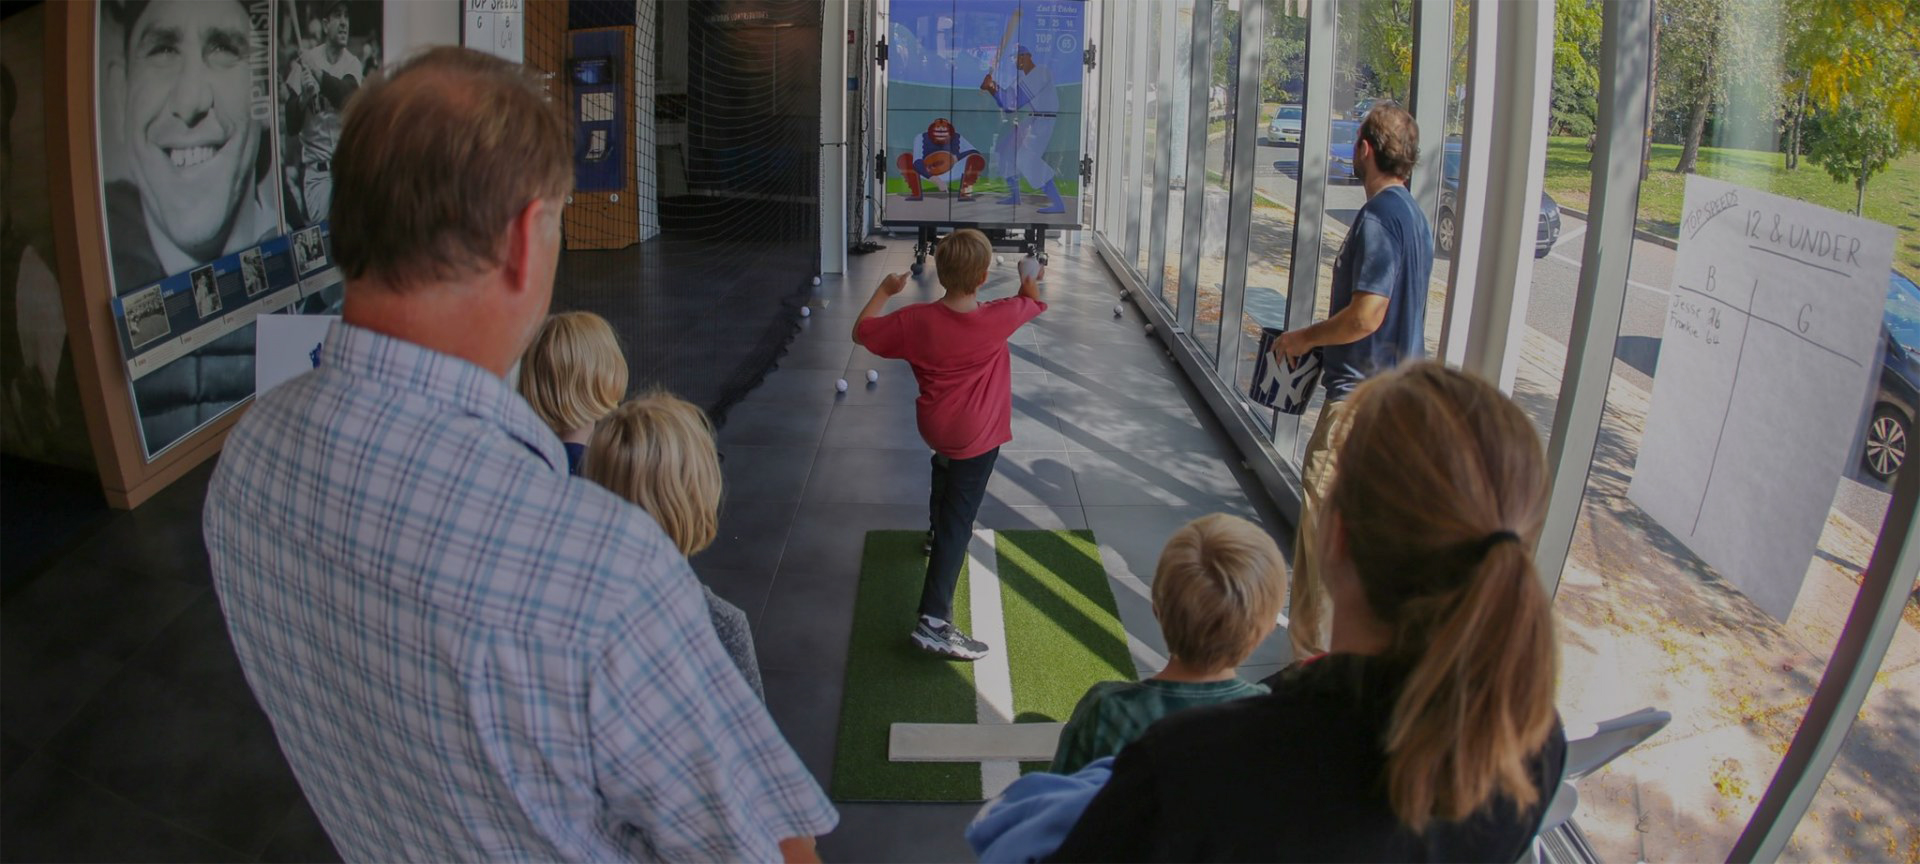 A boy throws a ball at a virtual pitching exhibit.